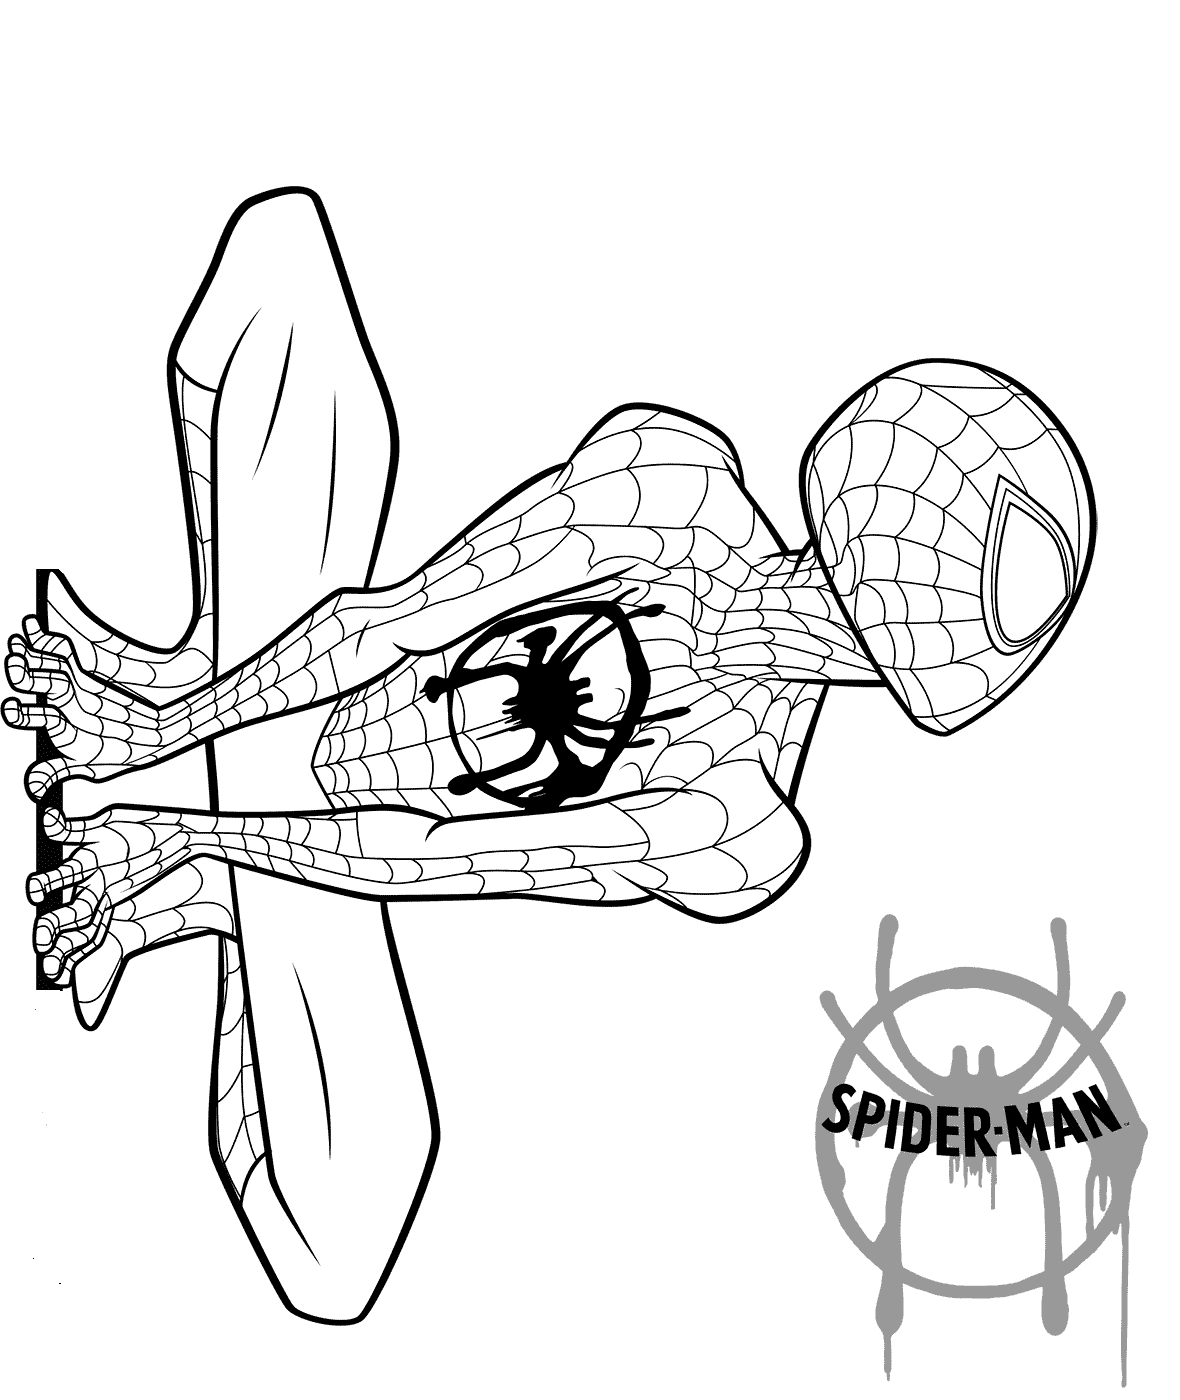 Spider Man Into The Spider Verse Coloring Page  Spiderman